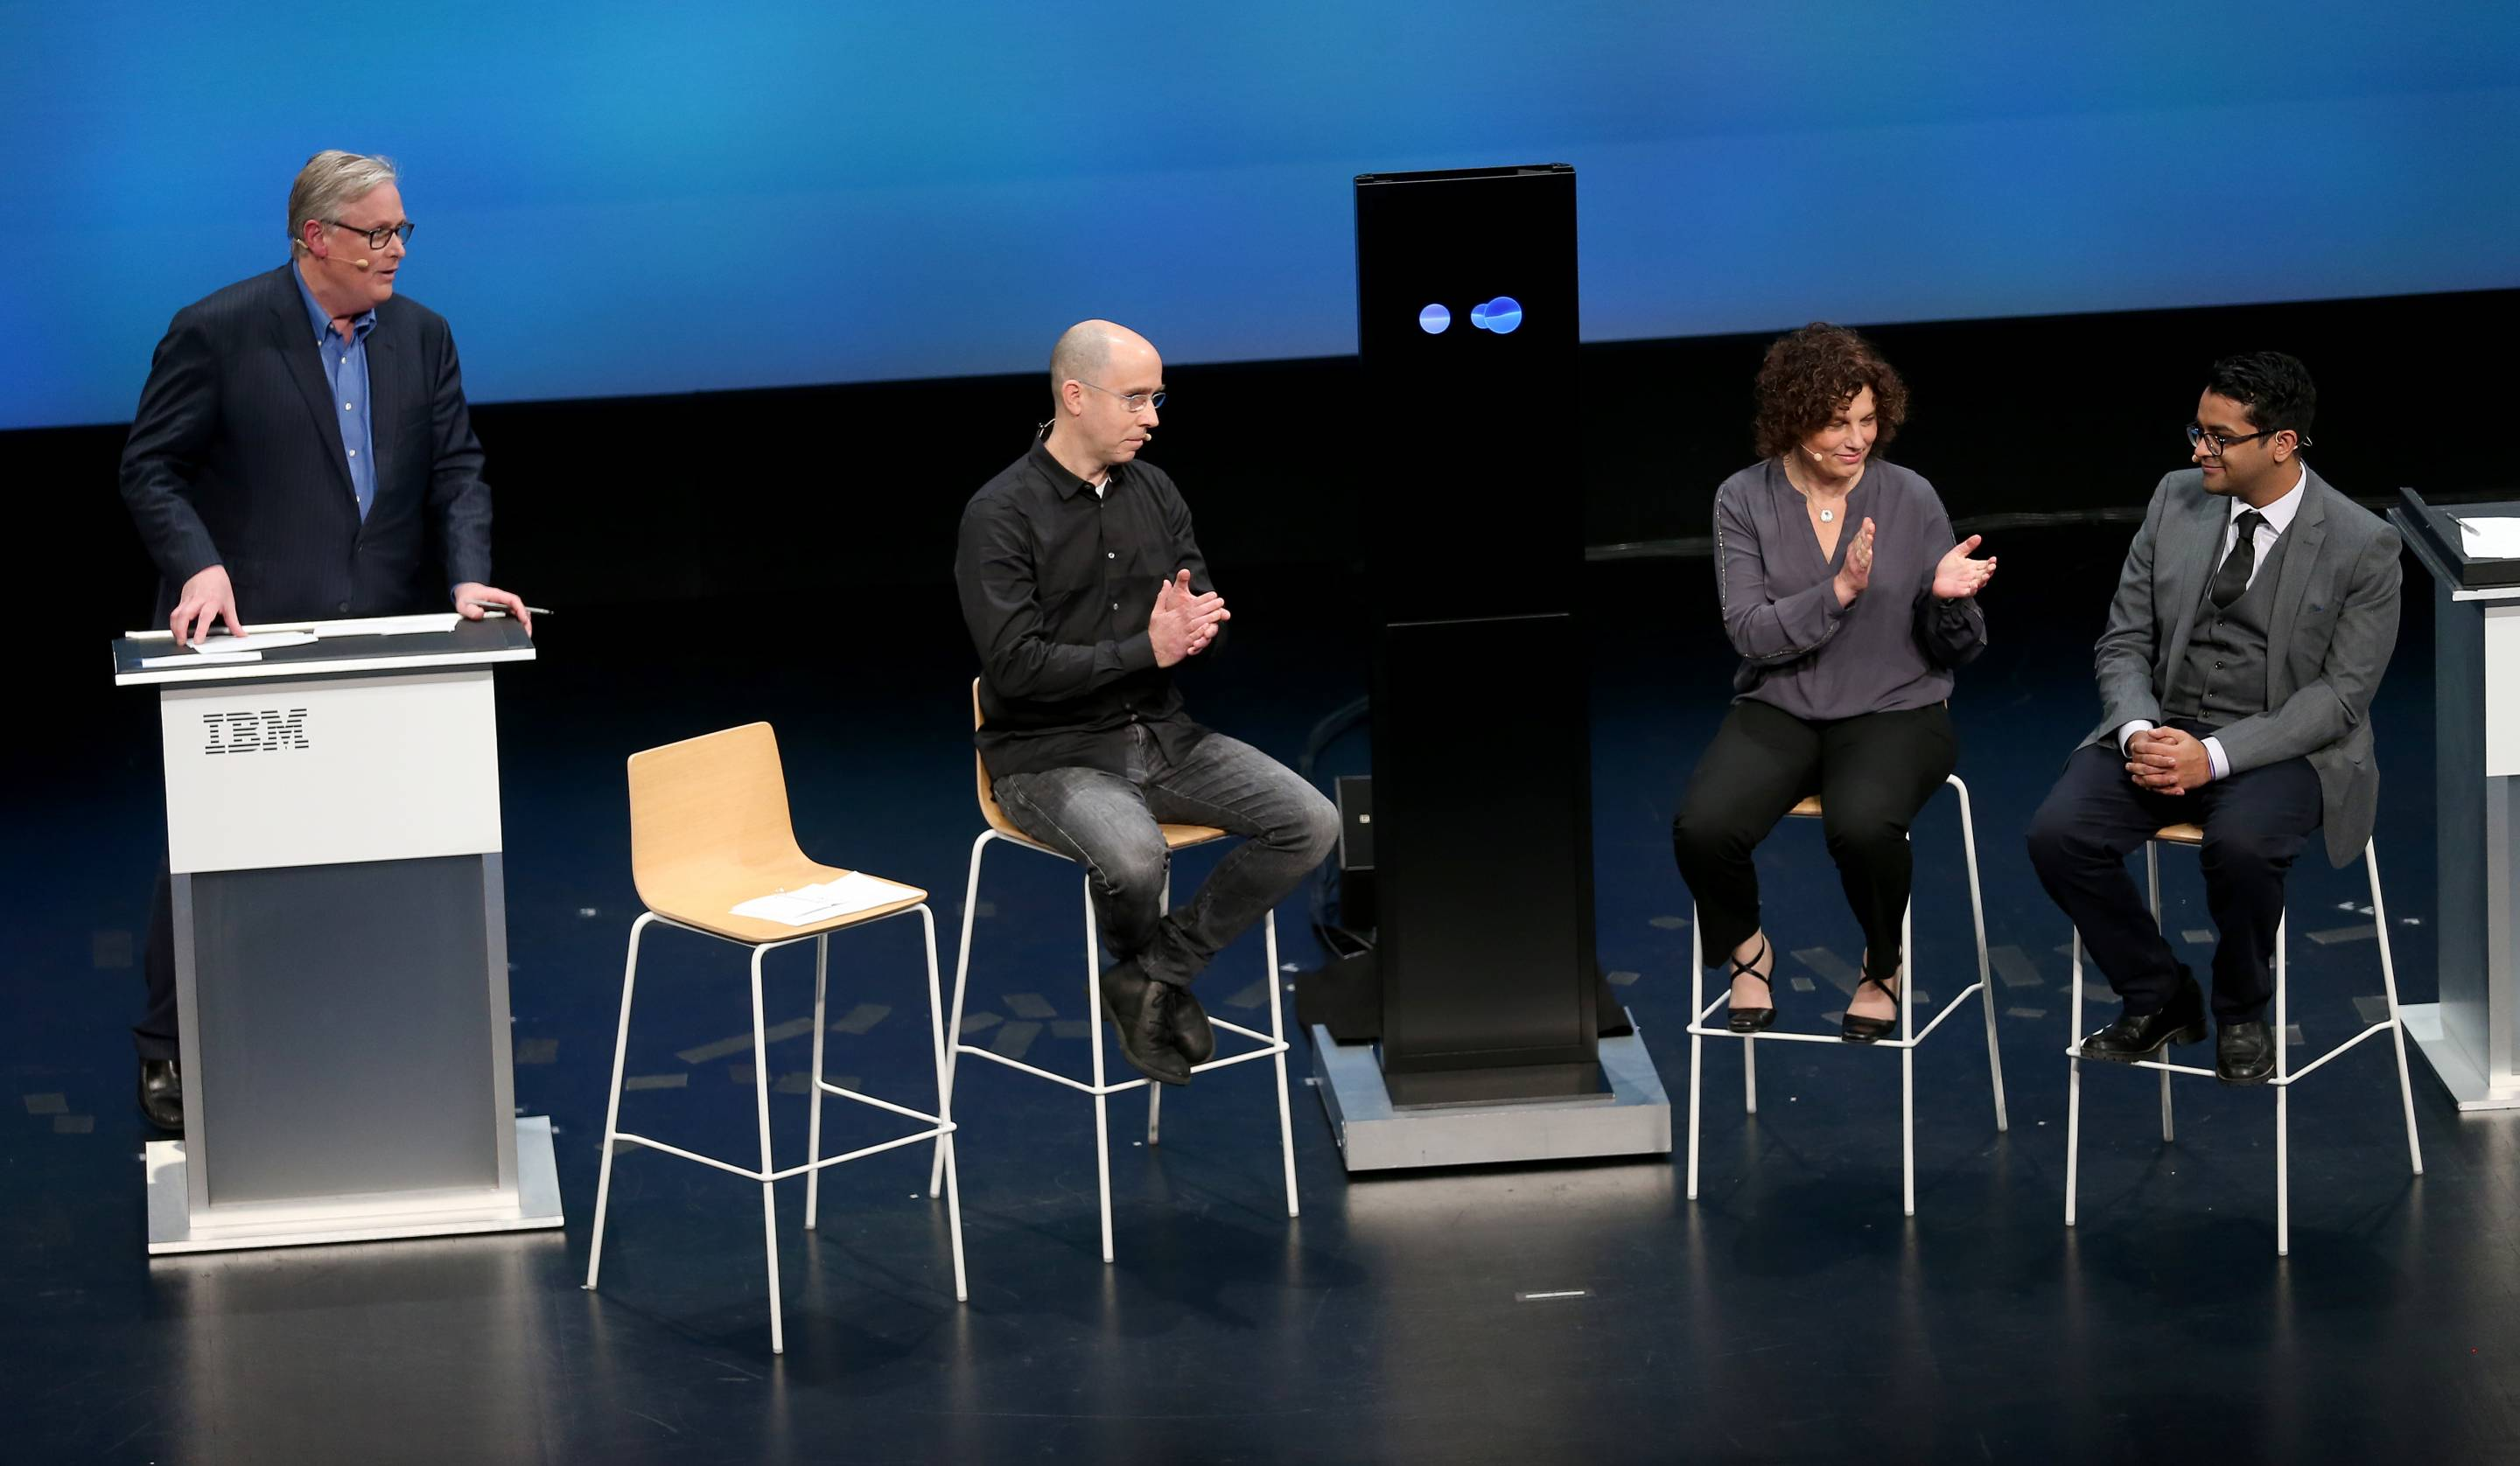 IBM Think 2019 Conference Artificial Intelligence Debate